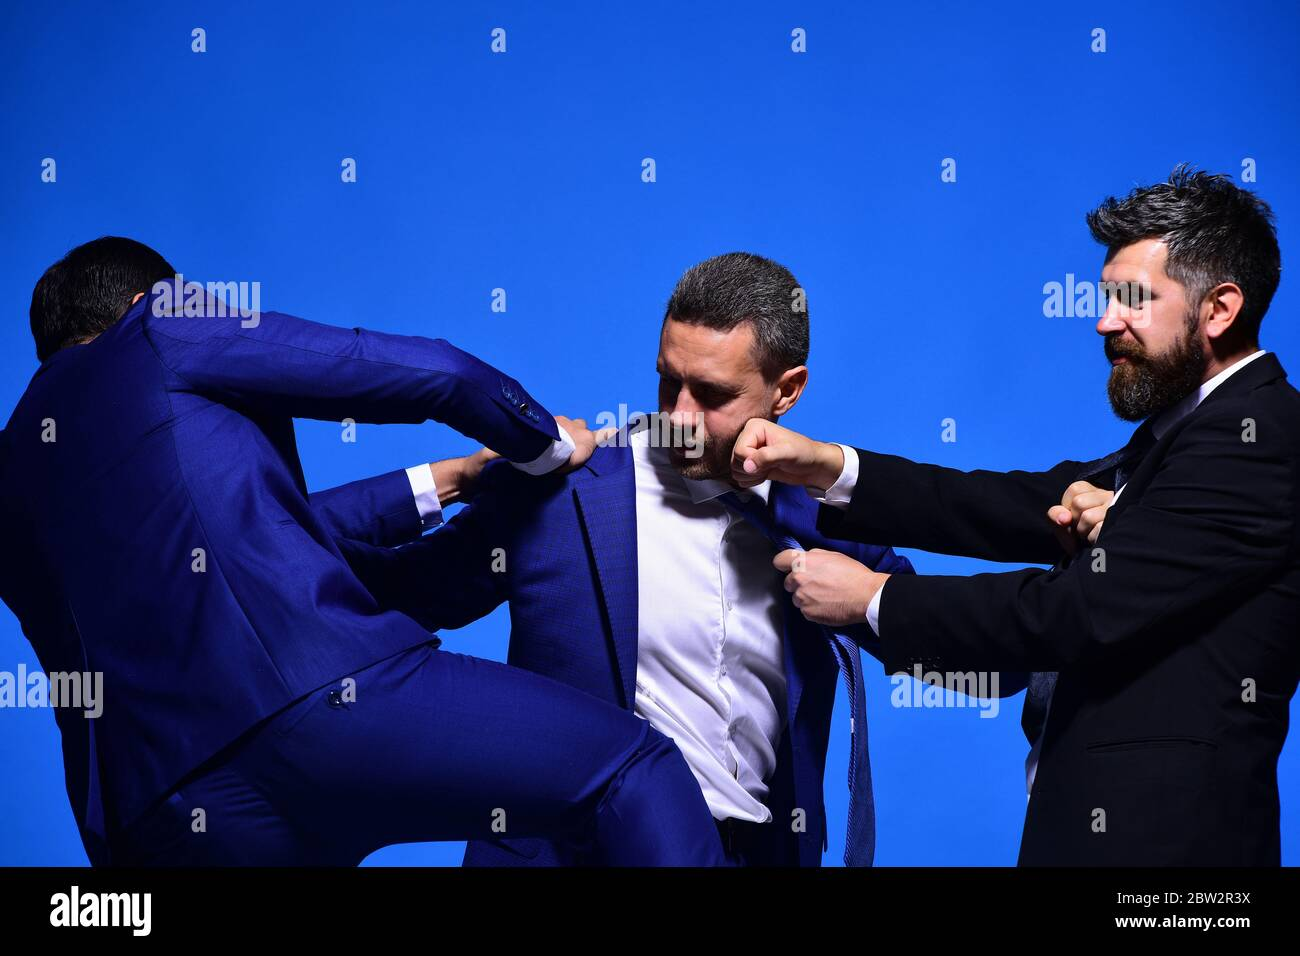 Rivalry and business confrontation concept. Coworkers decide upon best working position. Businessmen with strict faces in formal wear on blue background. Company leaders fight for business leadership Stock Photo